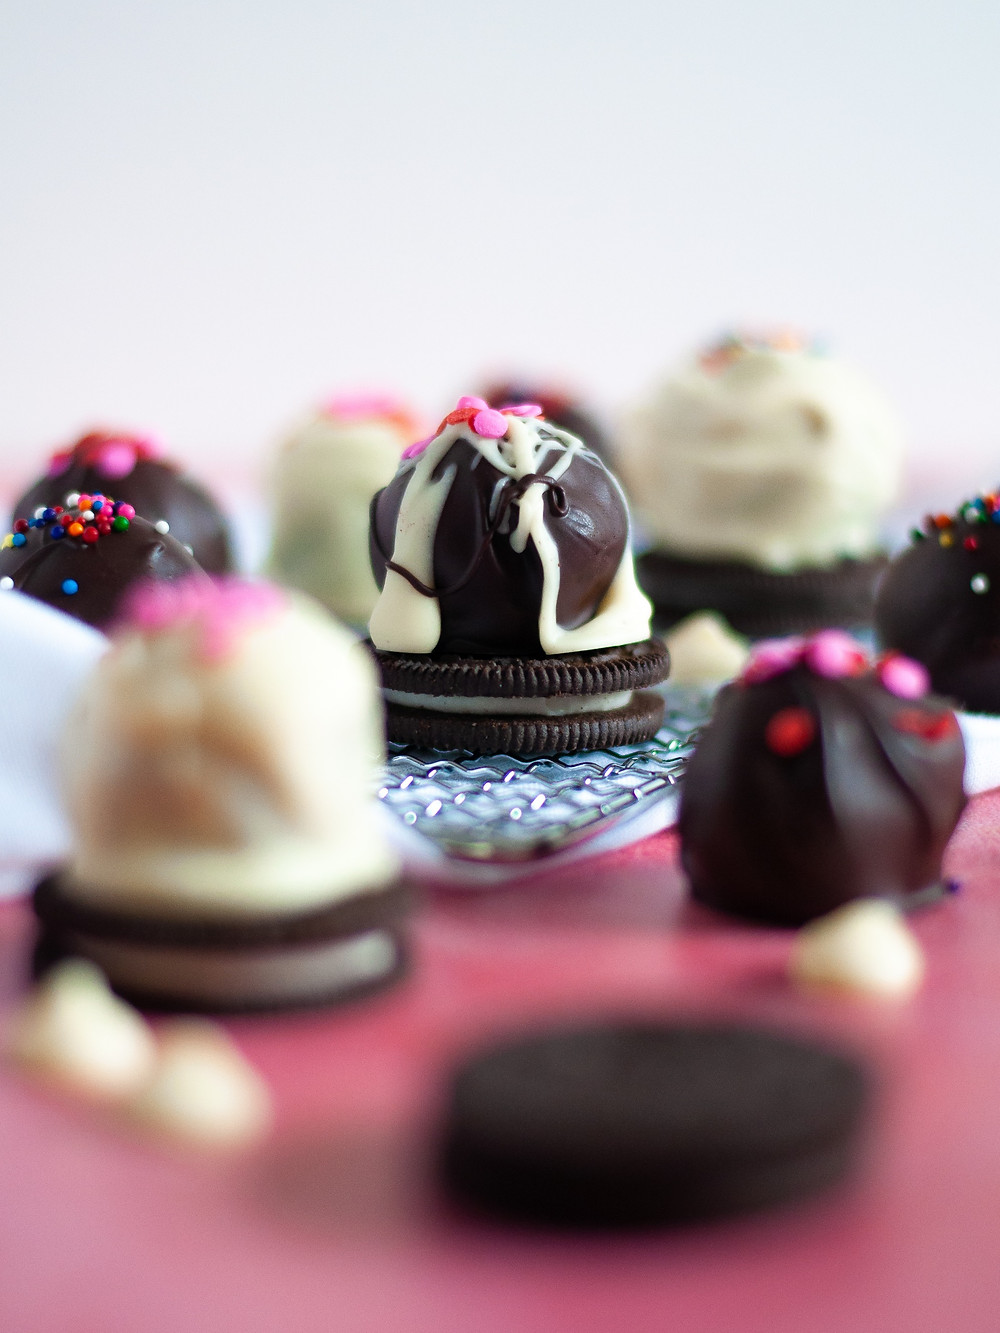 Another close up of oreo balls, displayed with oreos and chocolate chips